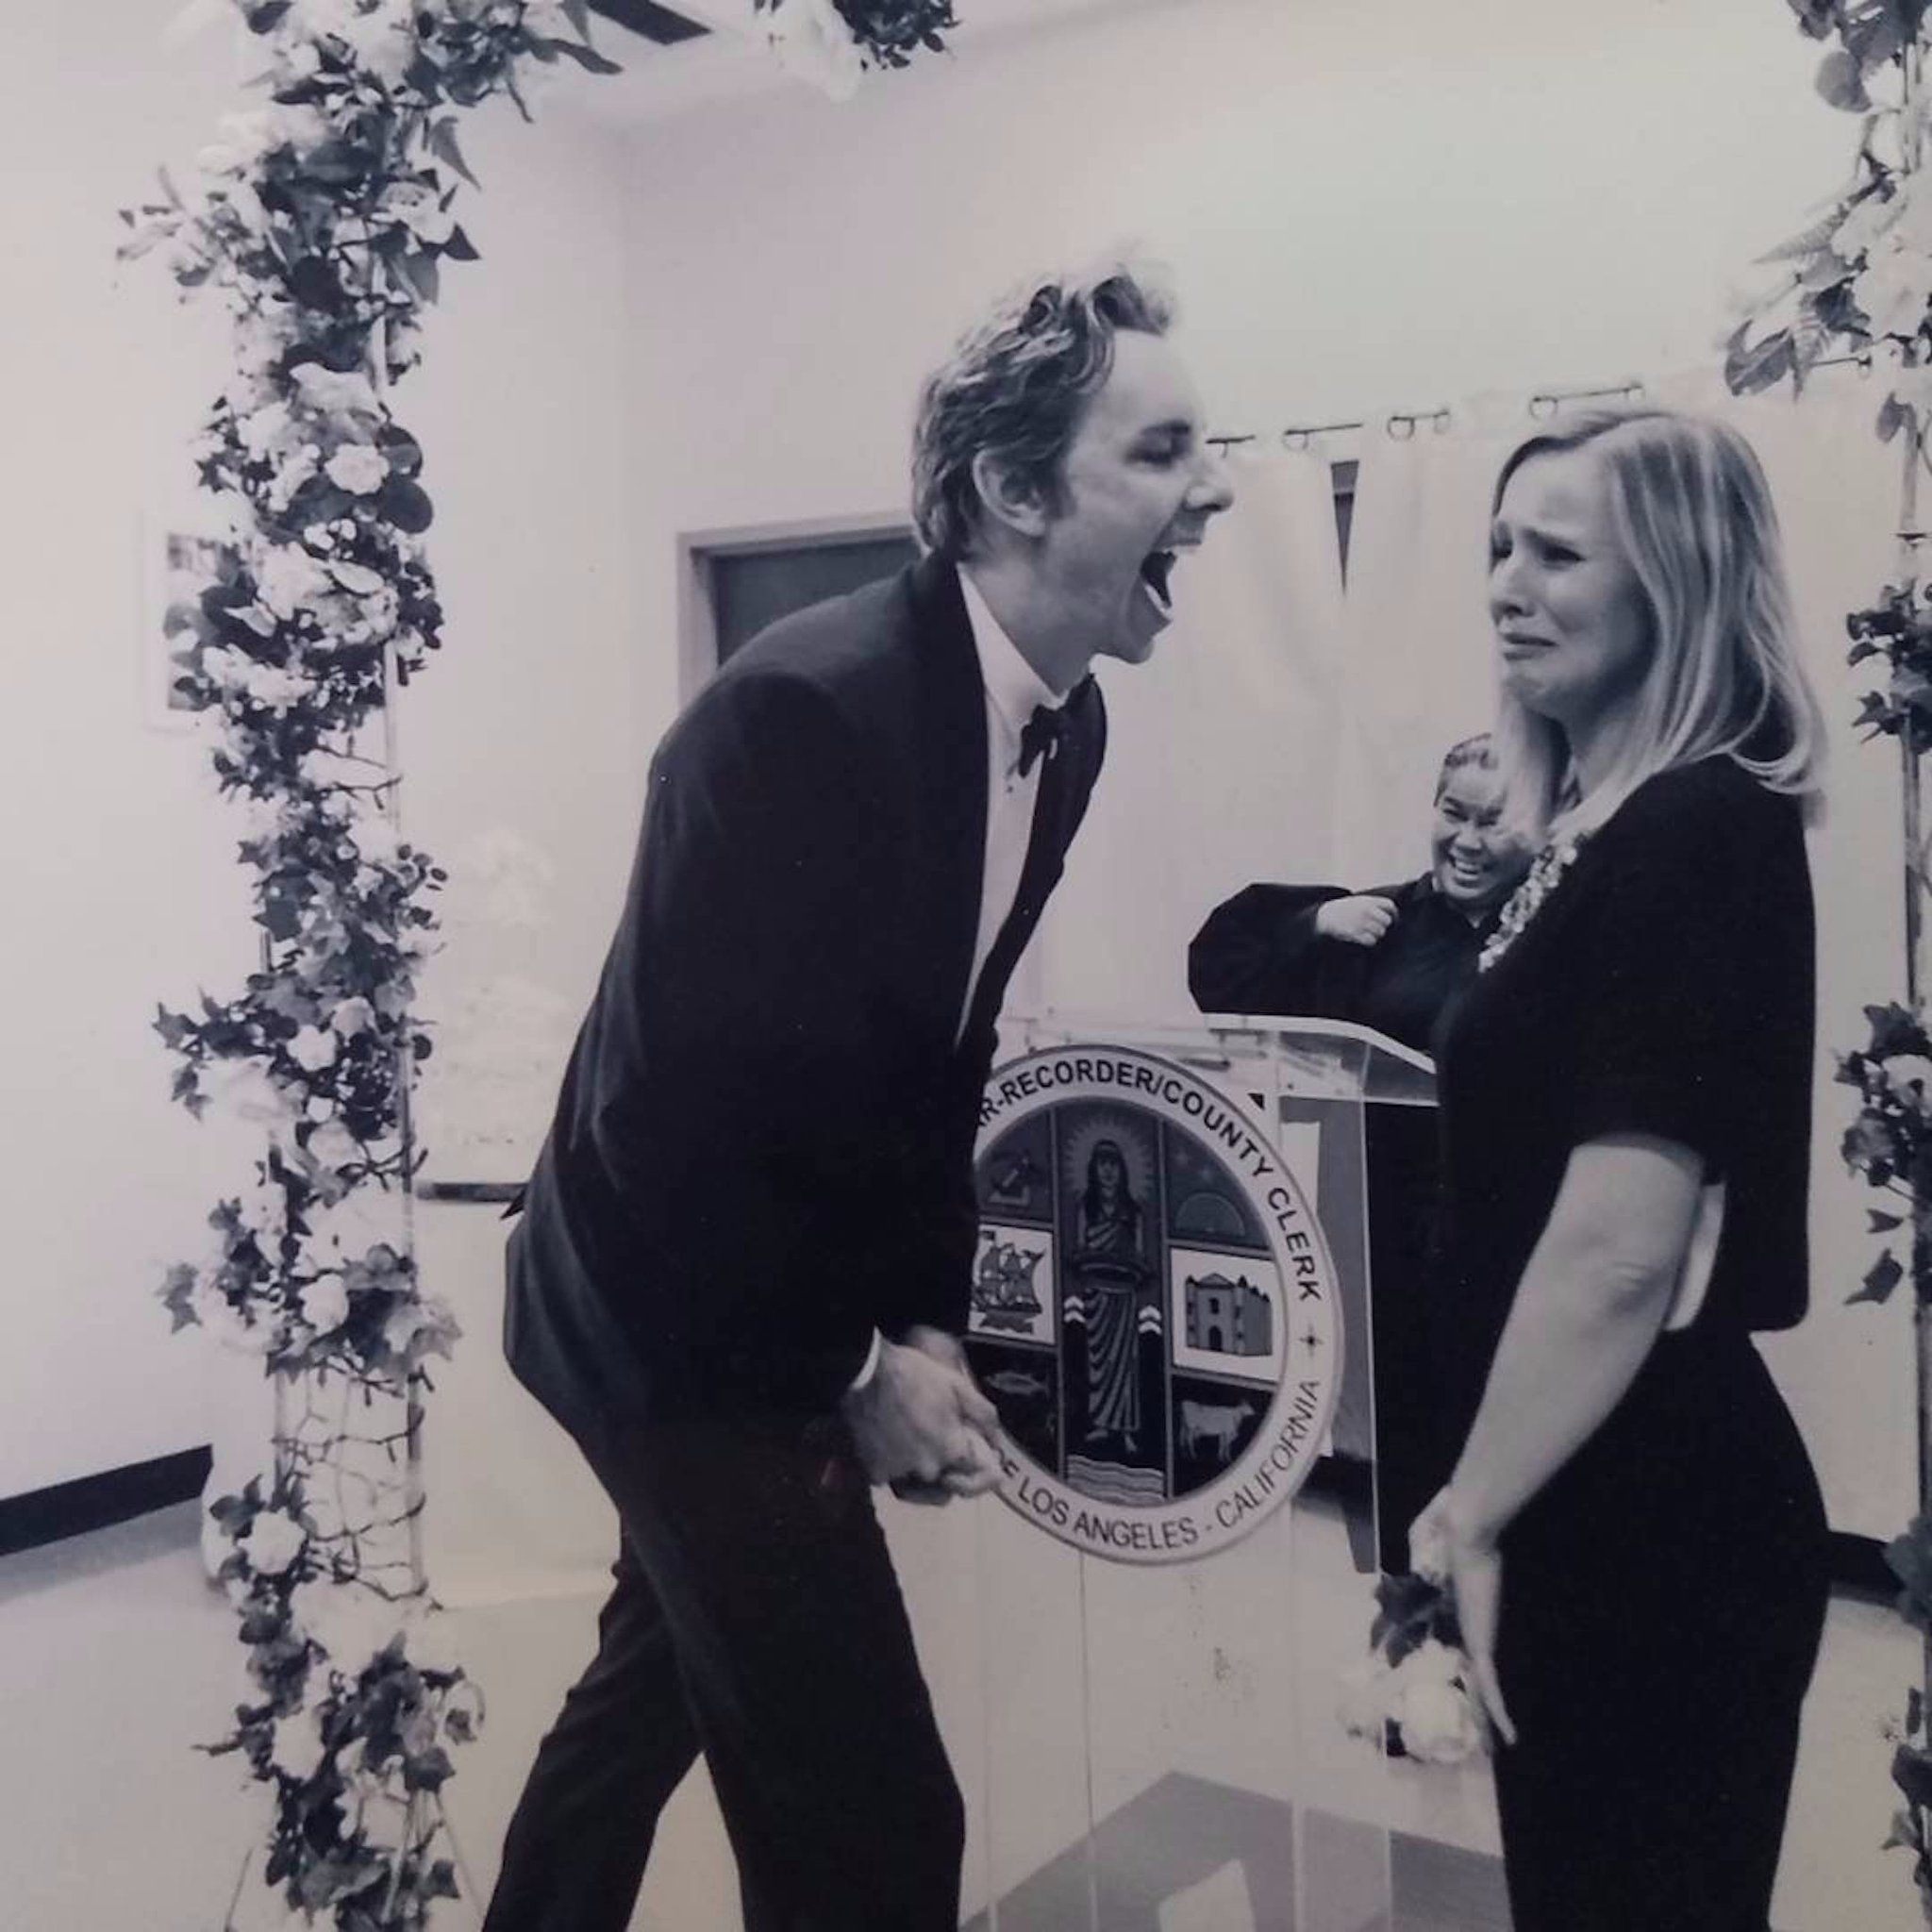 Kristen Bell Shares An Intimate Incredibly Funny Look At Her Wedding To Dax Shepard Kristen Bell And Dax Kristen Bell Kristen Bell Wedding